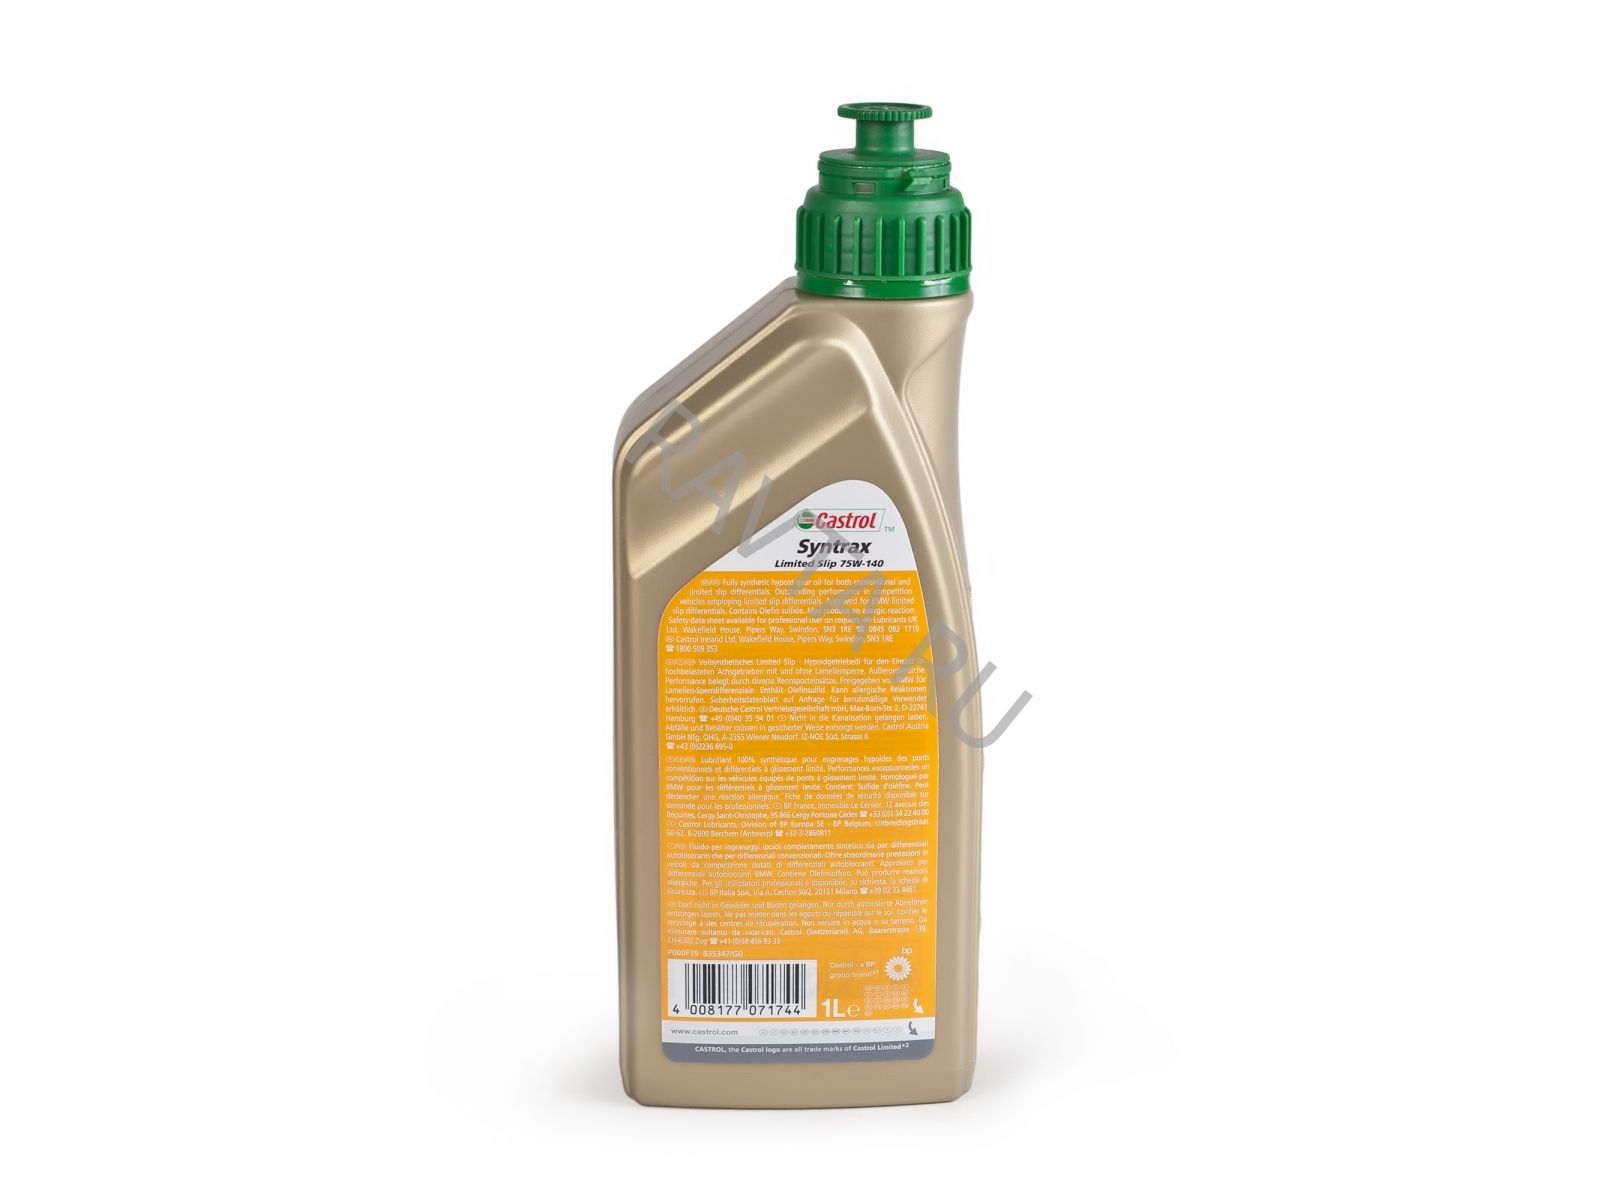 castrol Масло Castrol Syntrax Limited Slip 75W 140 (1л) 4 671 940 060